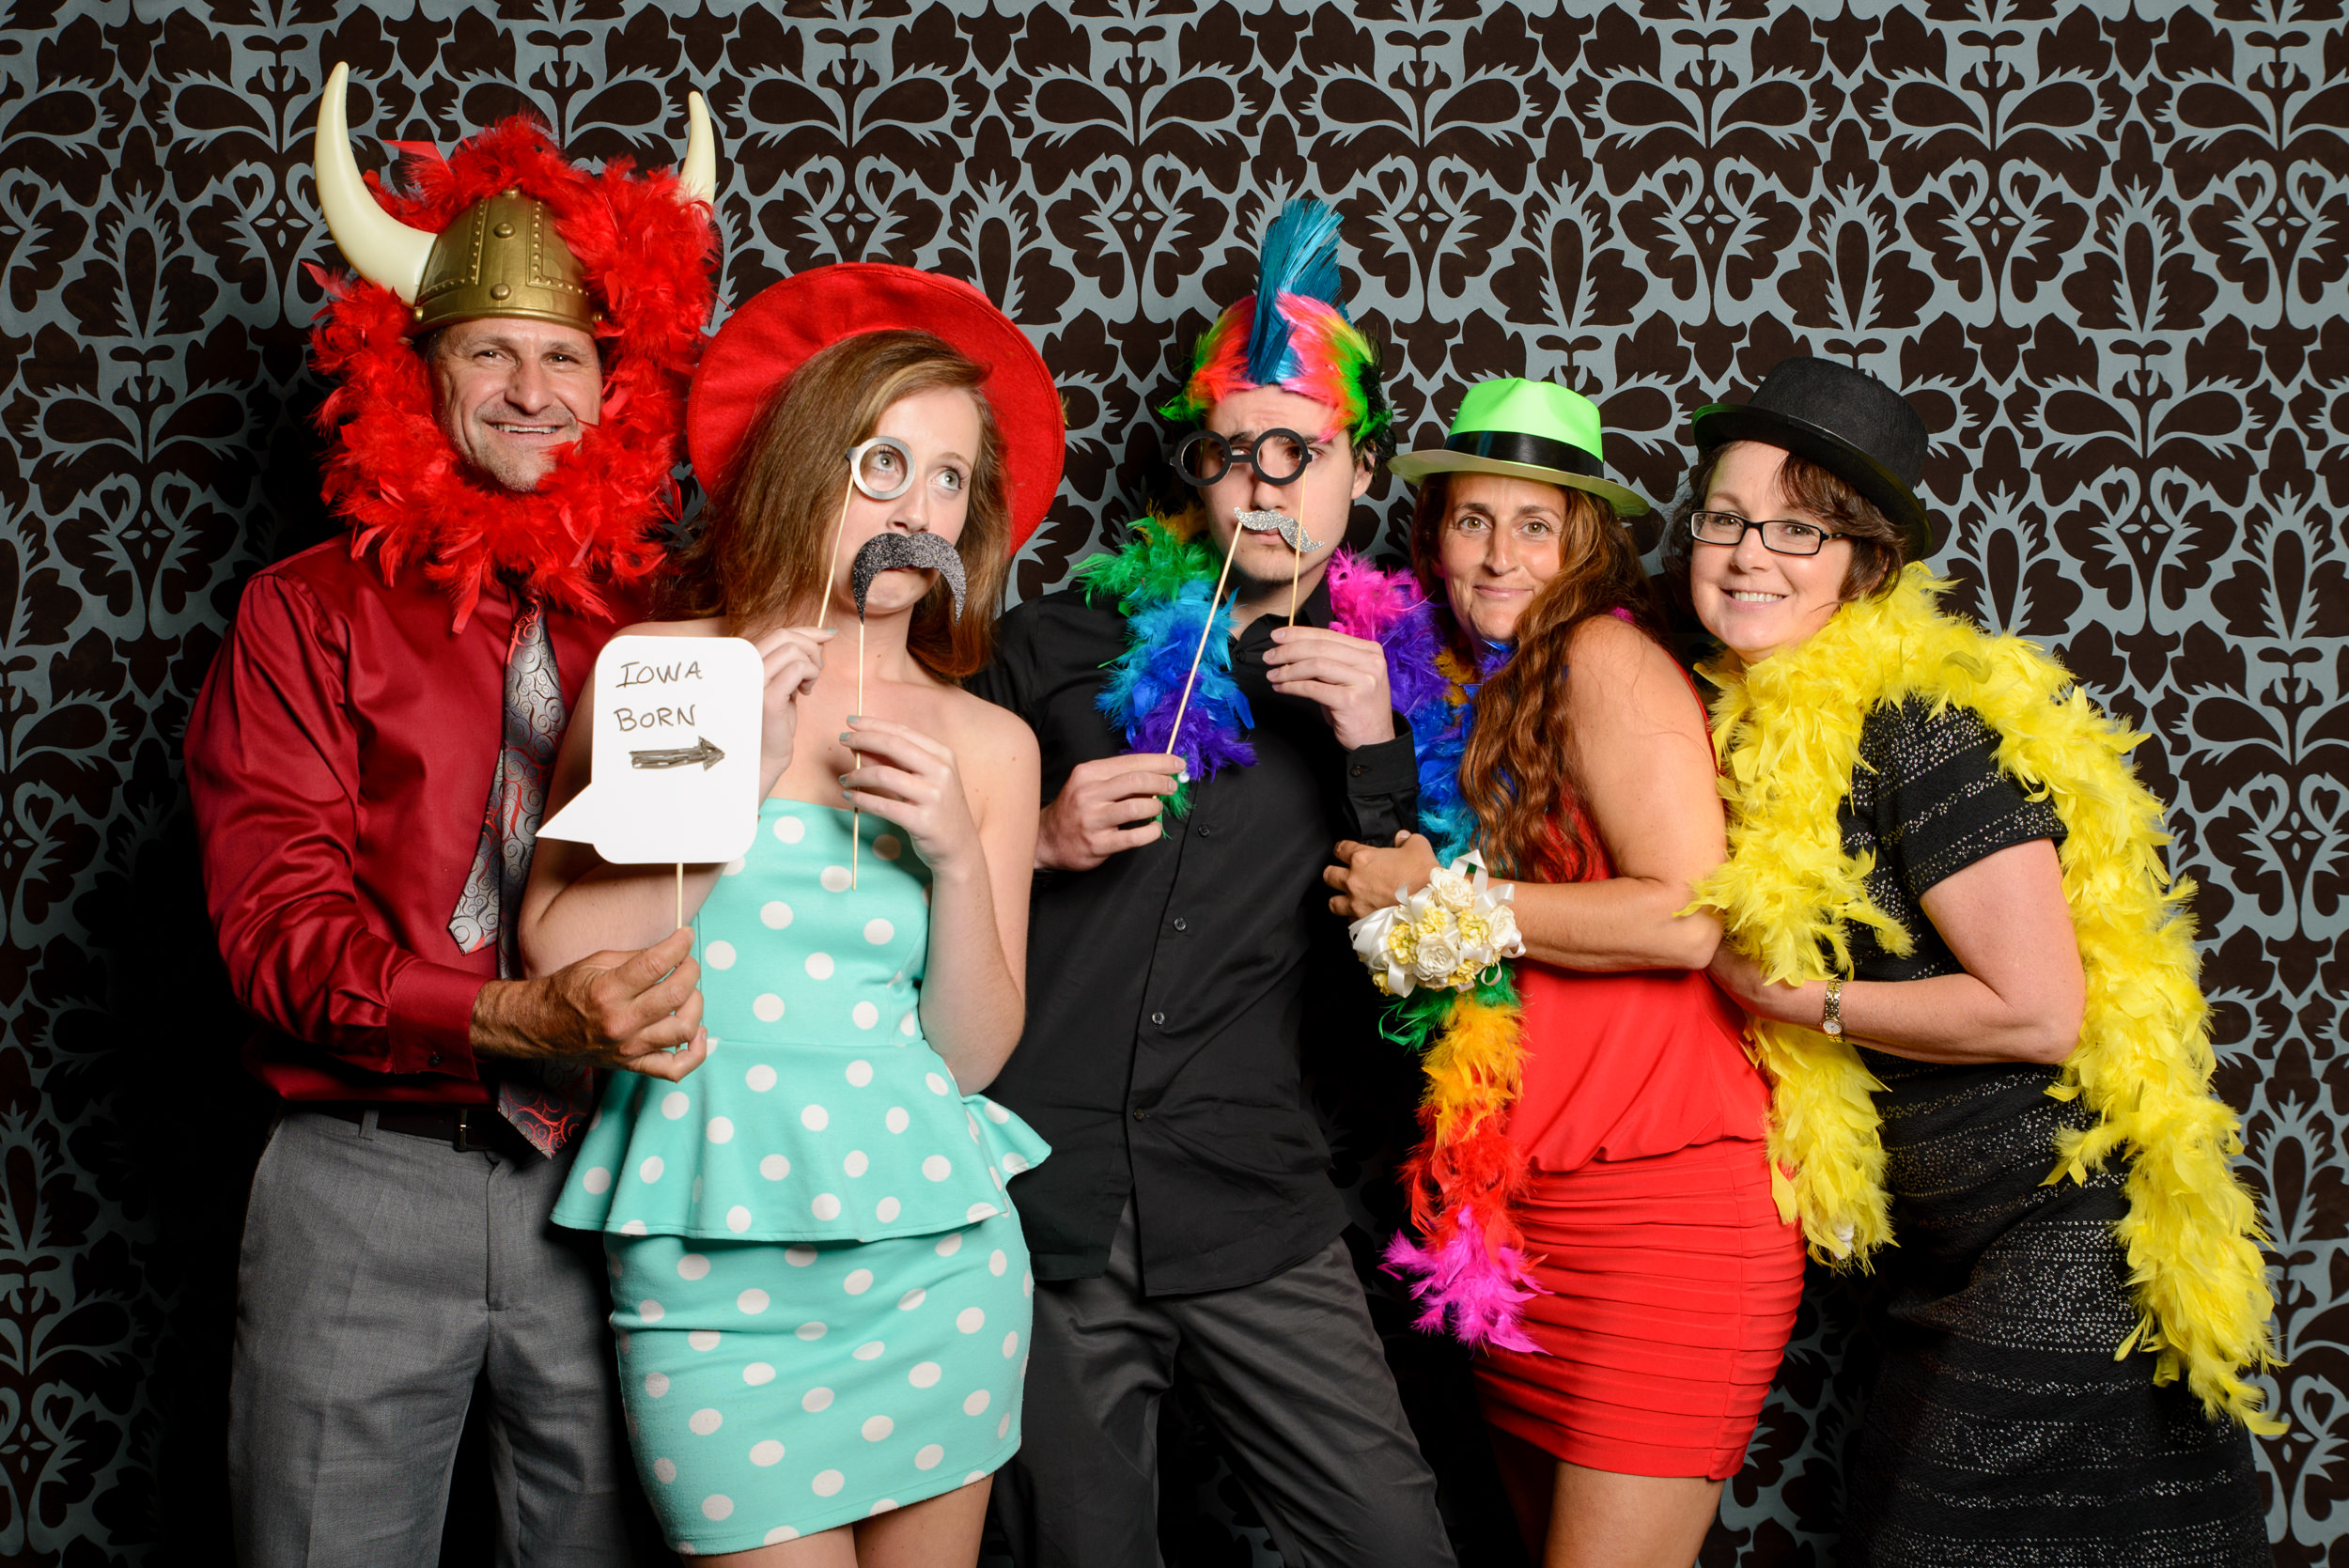 philadelphia-photo-booth-14